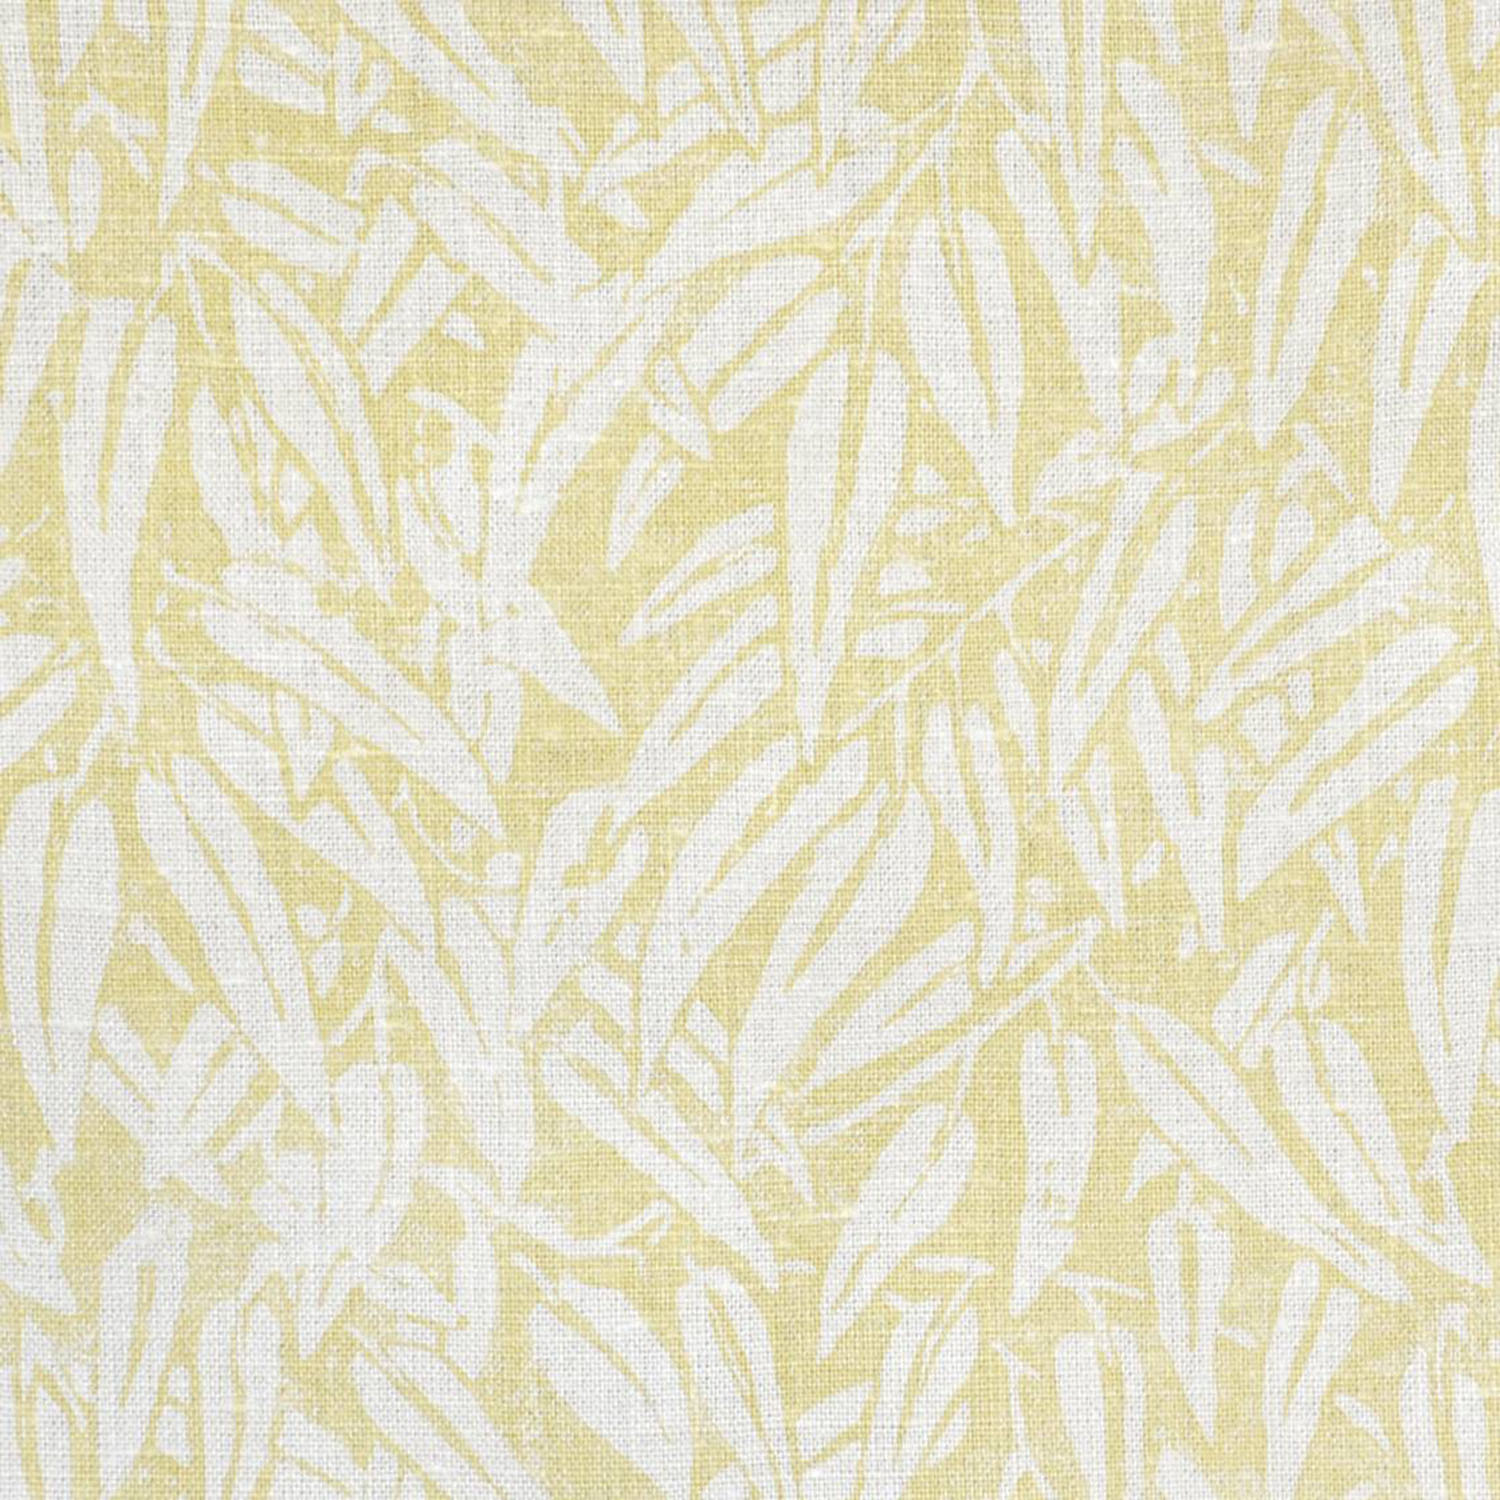 <p><strong>WILLOW</strong>yellow 6600-03<a href=/the-peggy-angus-collection/willow-yellow-6600-03>More →</a></p>